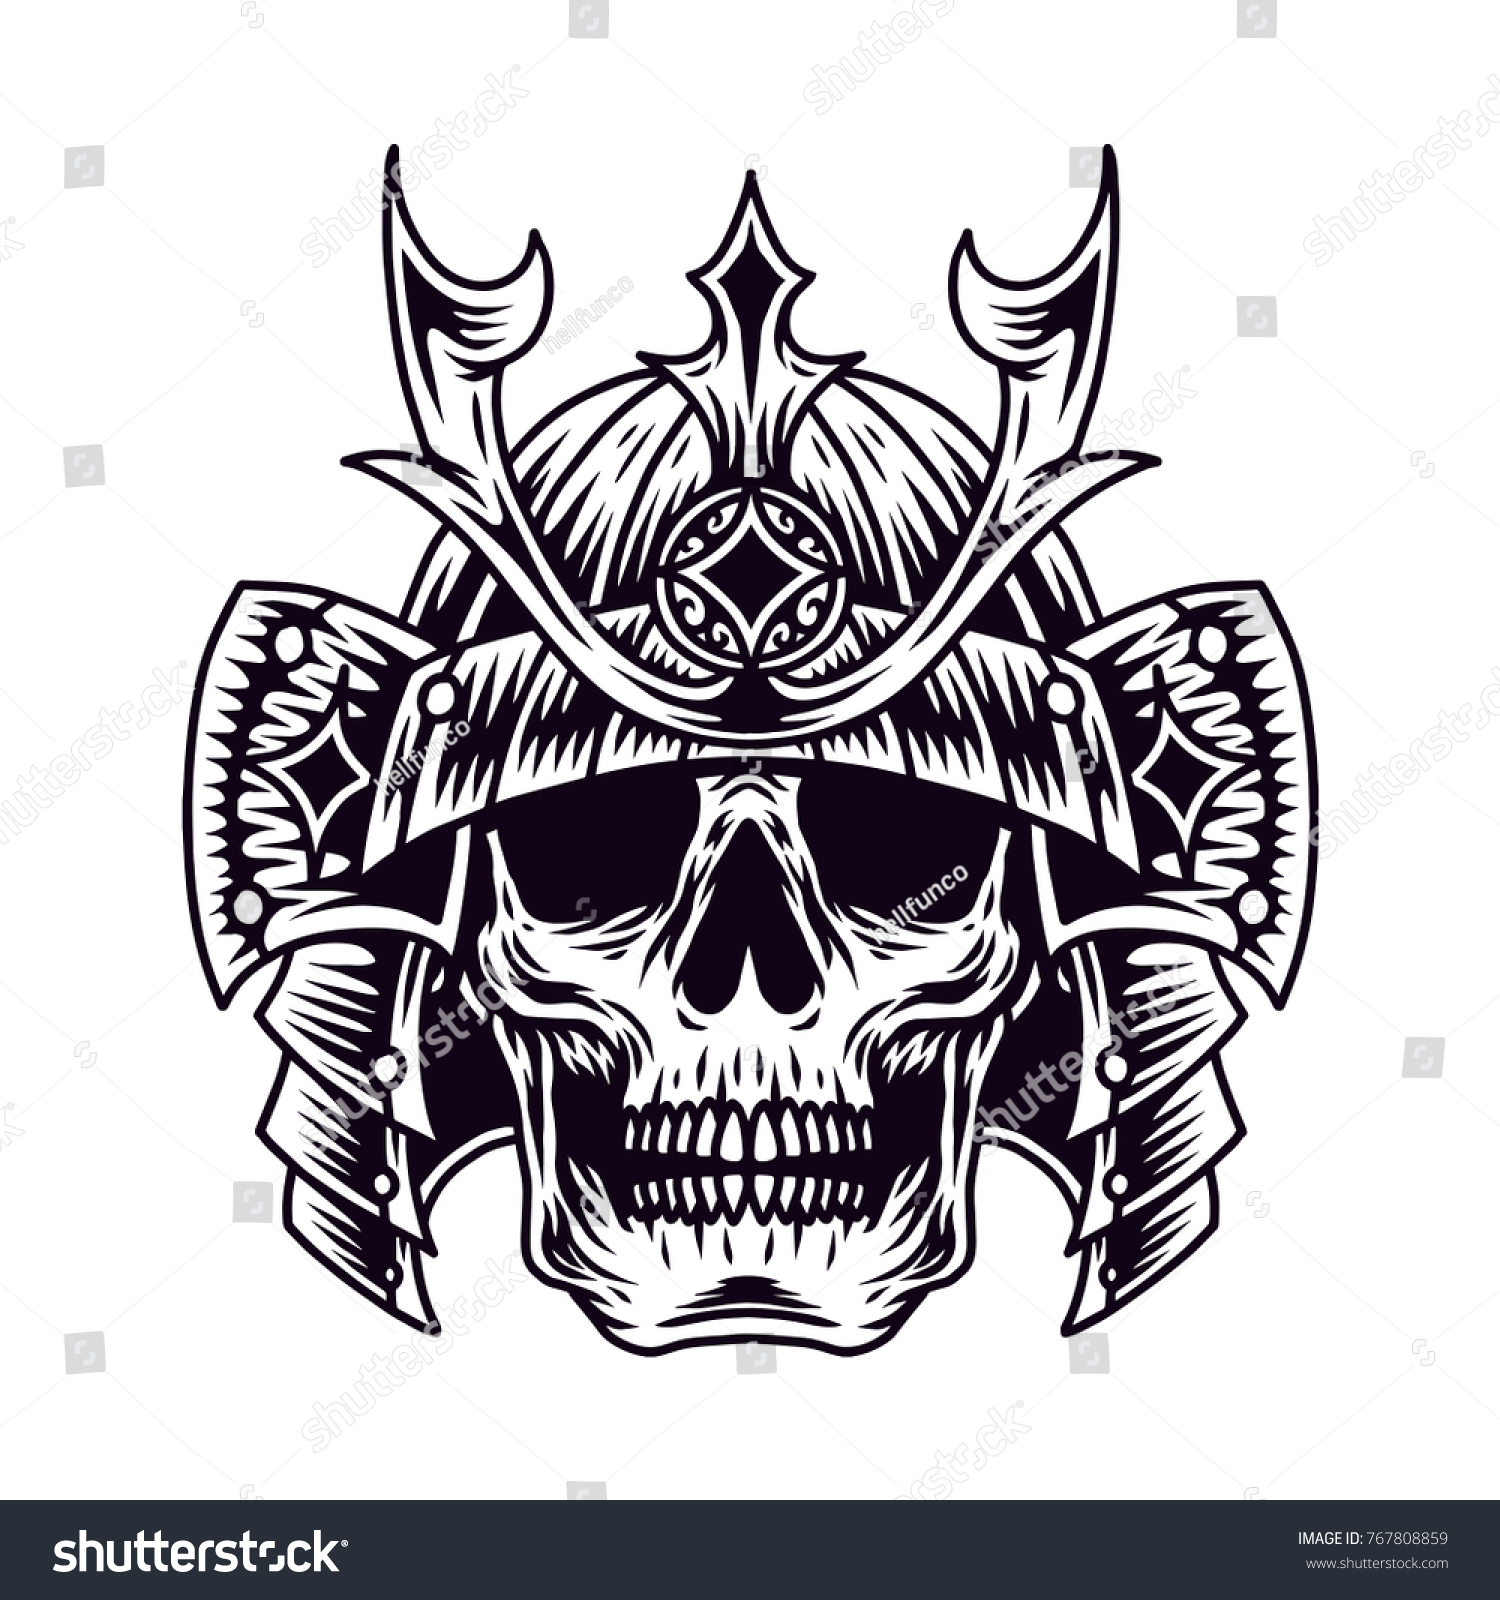 Samurai skull vector hand drawn